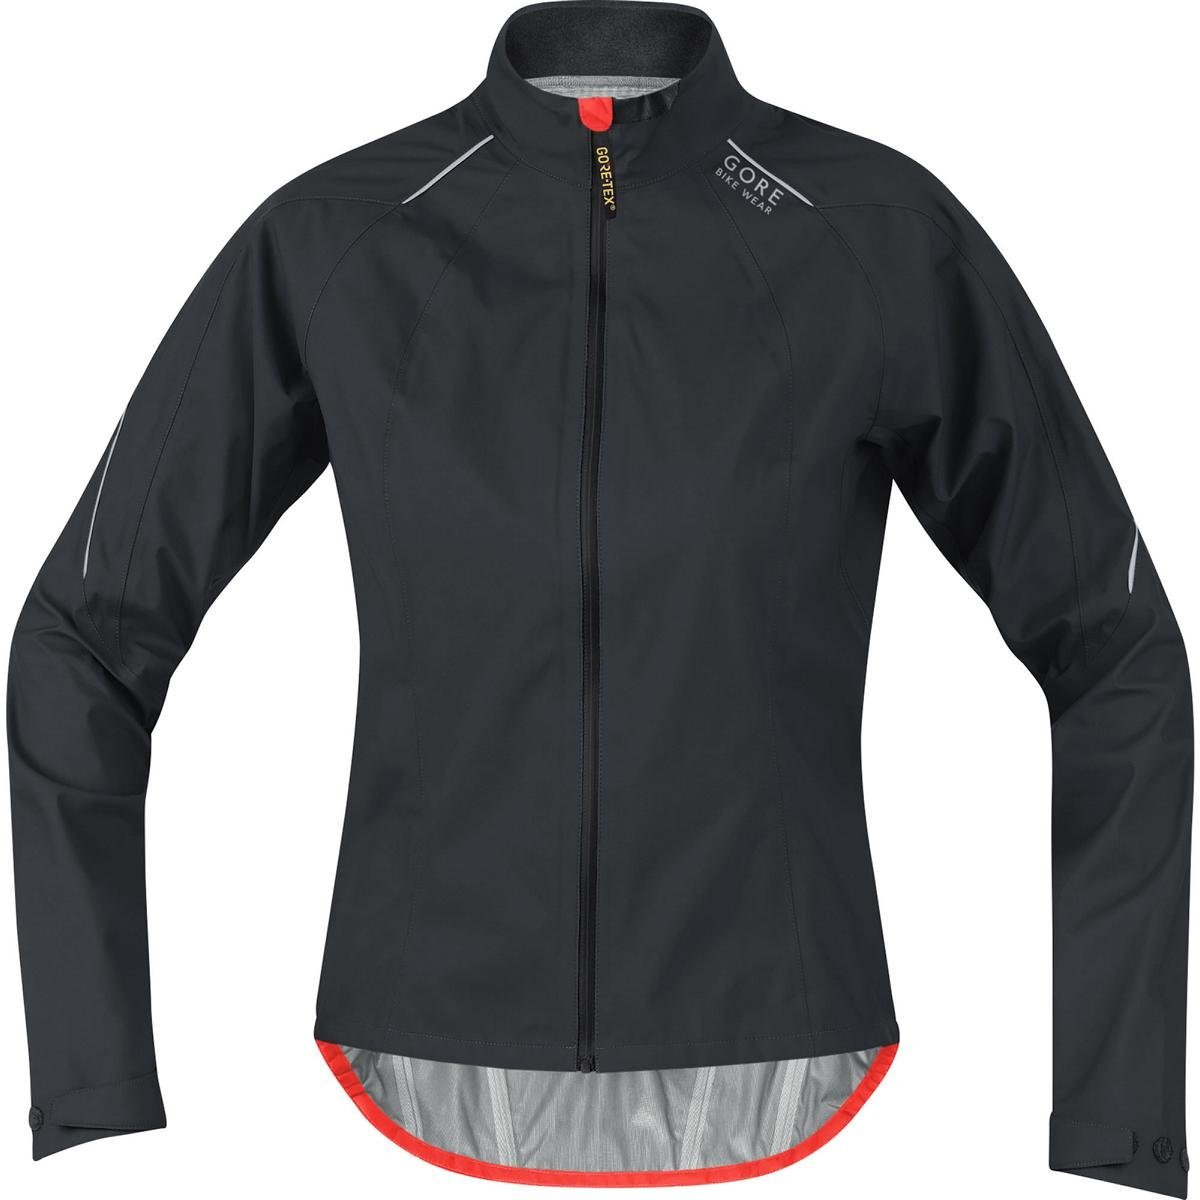 Gore Power GT AS Lady Jacket Orange-Black 2014 Gore Bike Wear